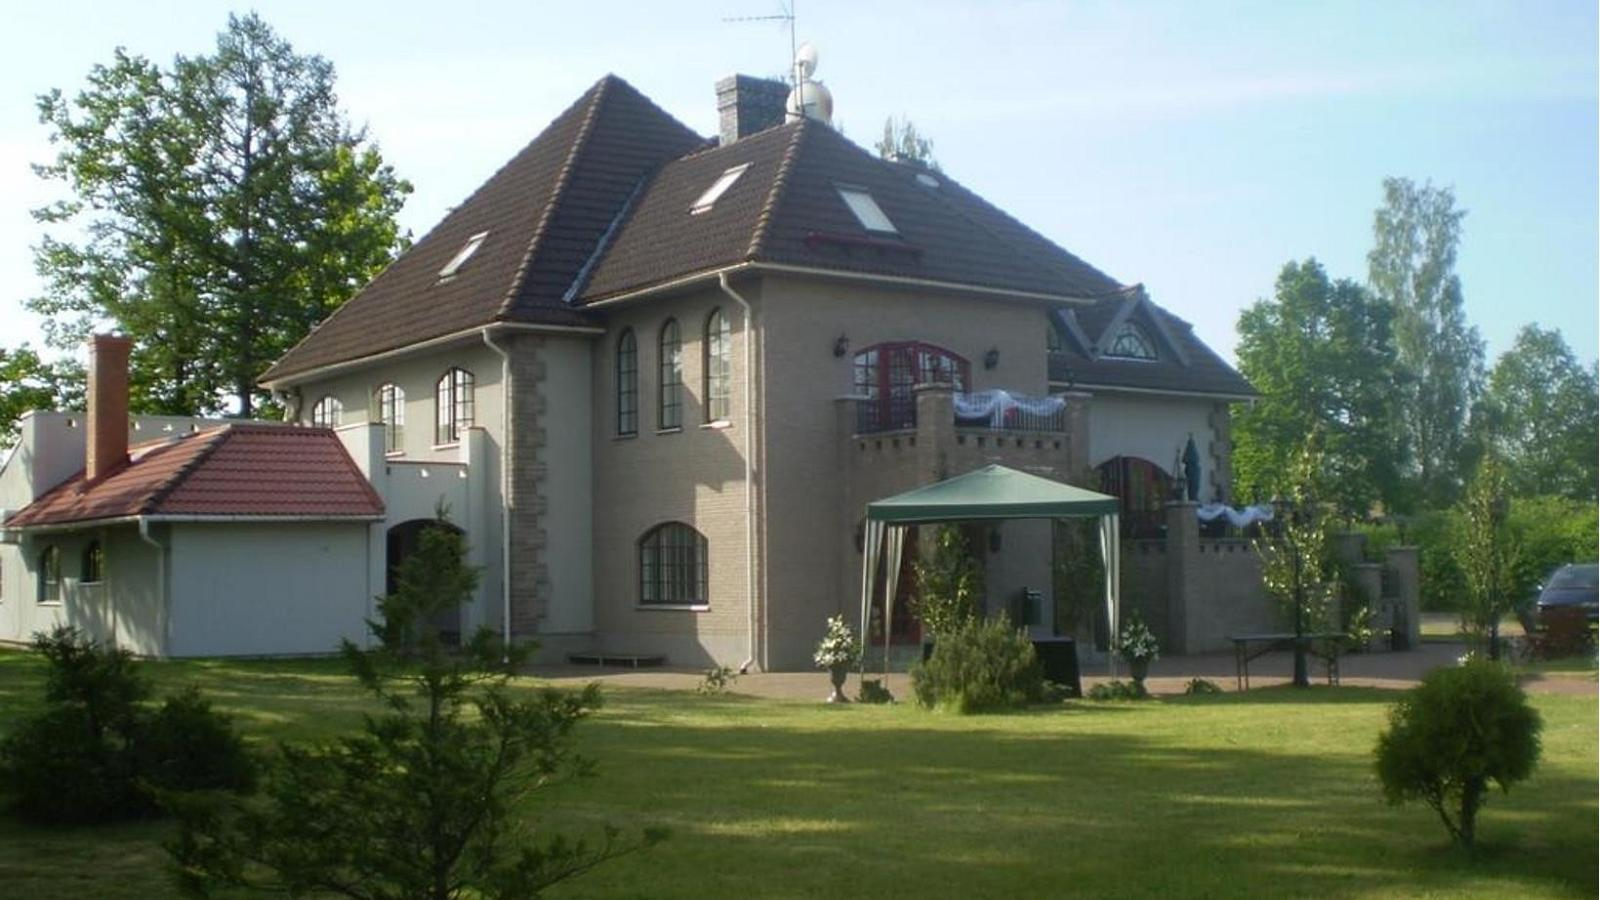 image Hotell de Tolly